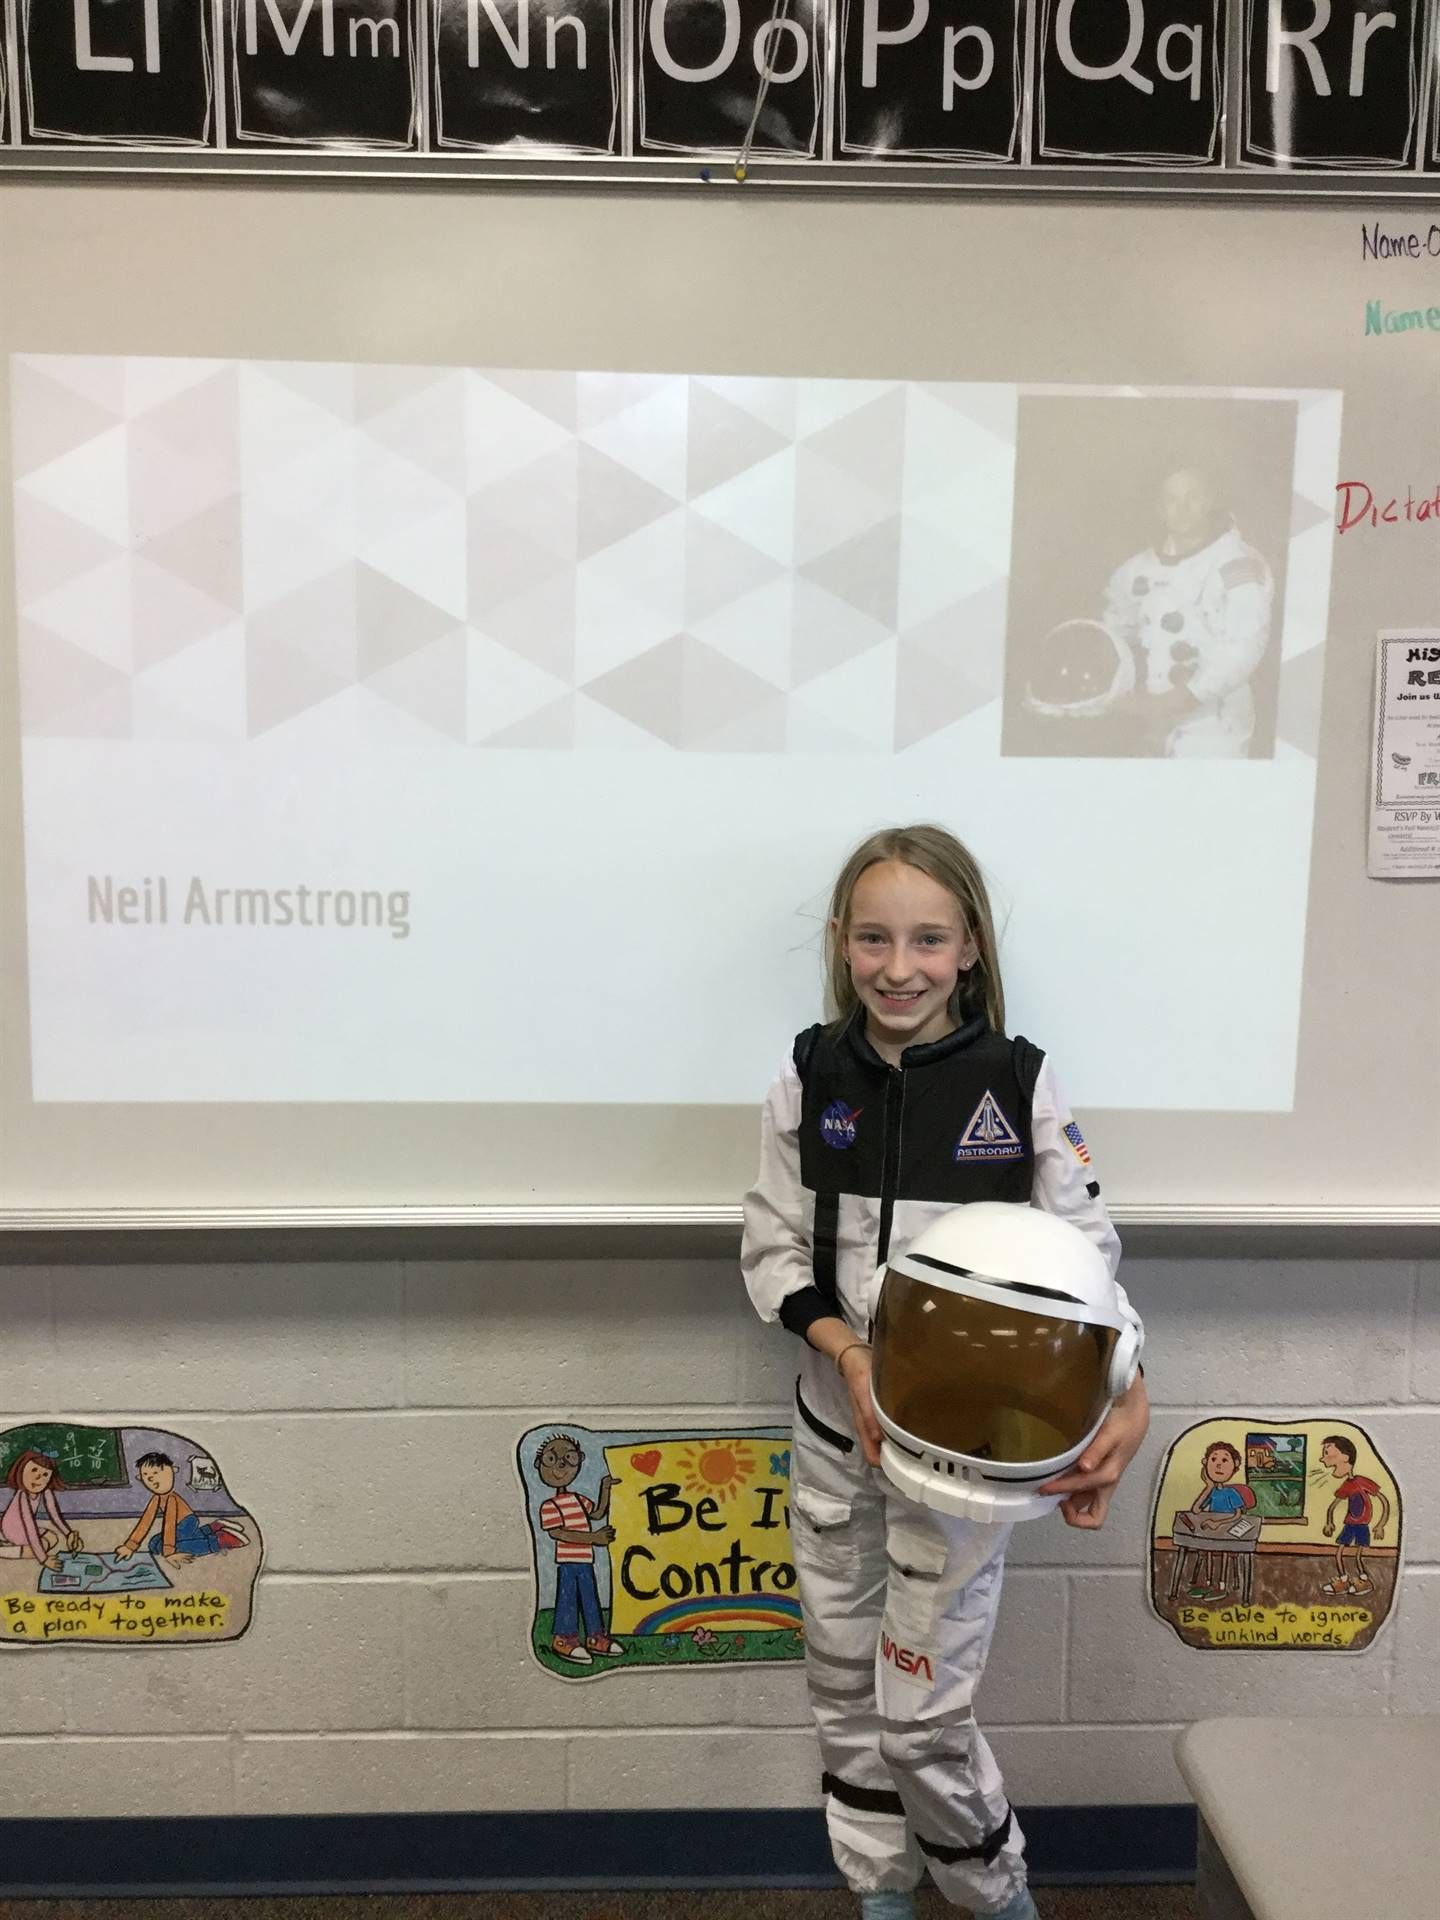 Thank you, Brookelyn, for all your info on Neil Armstrong!